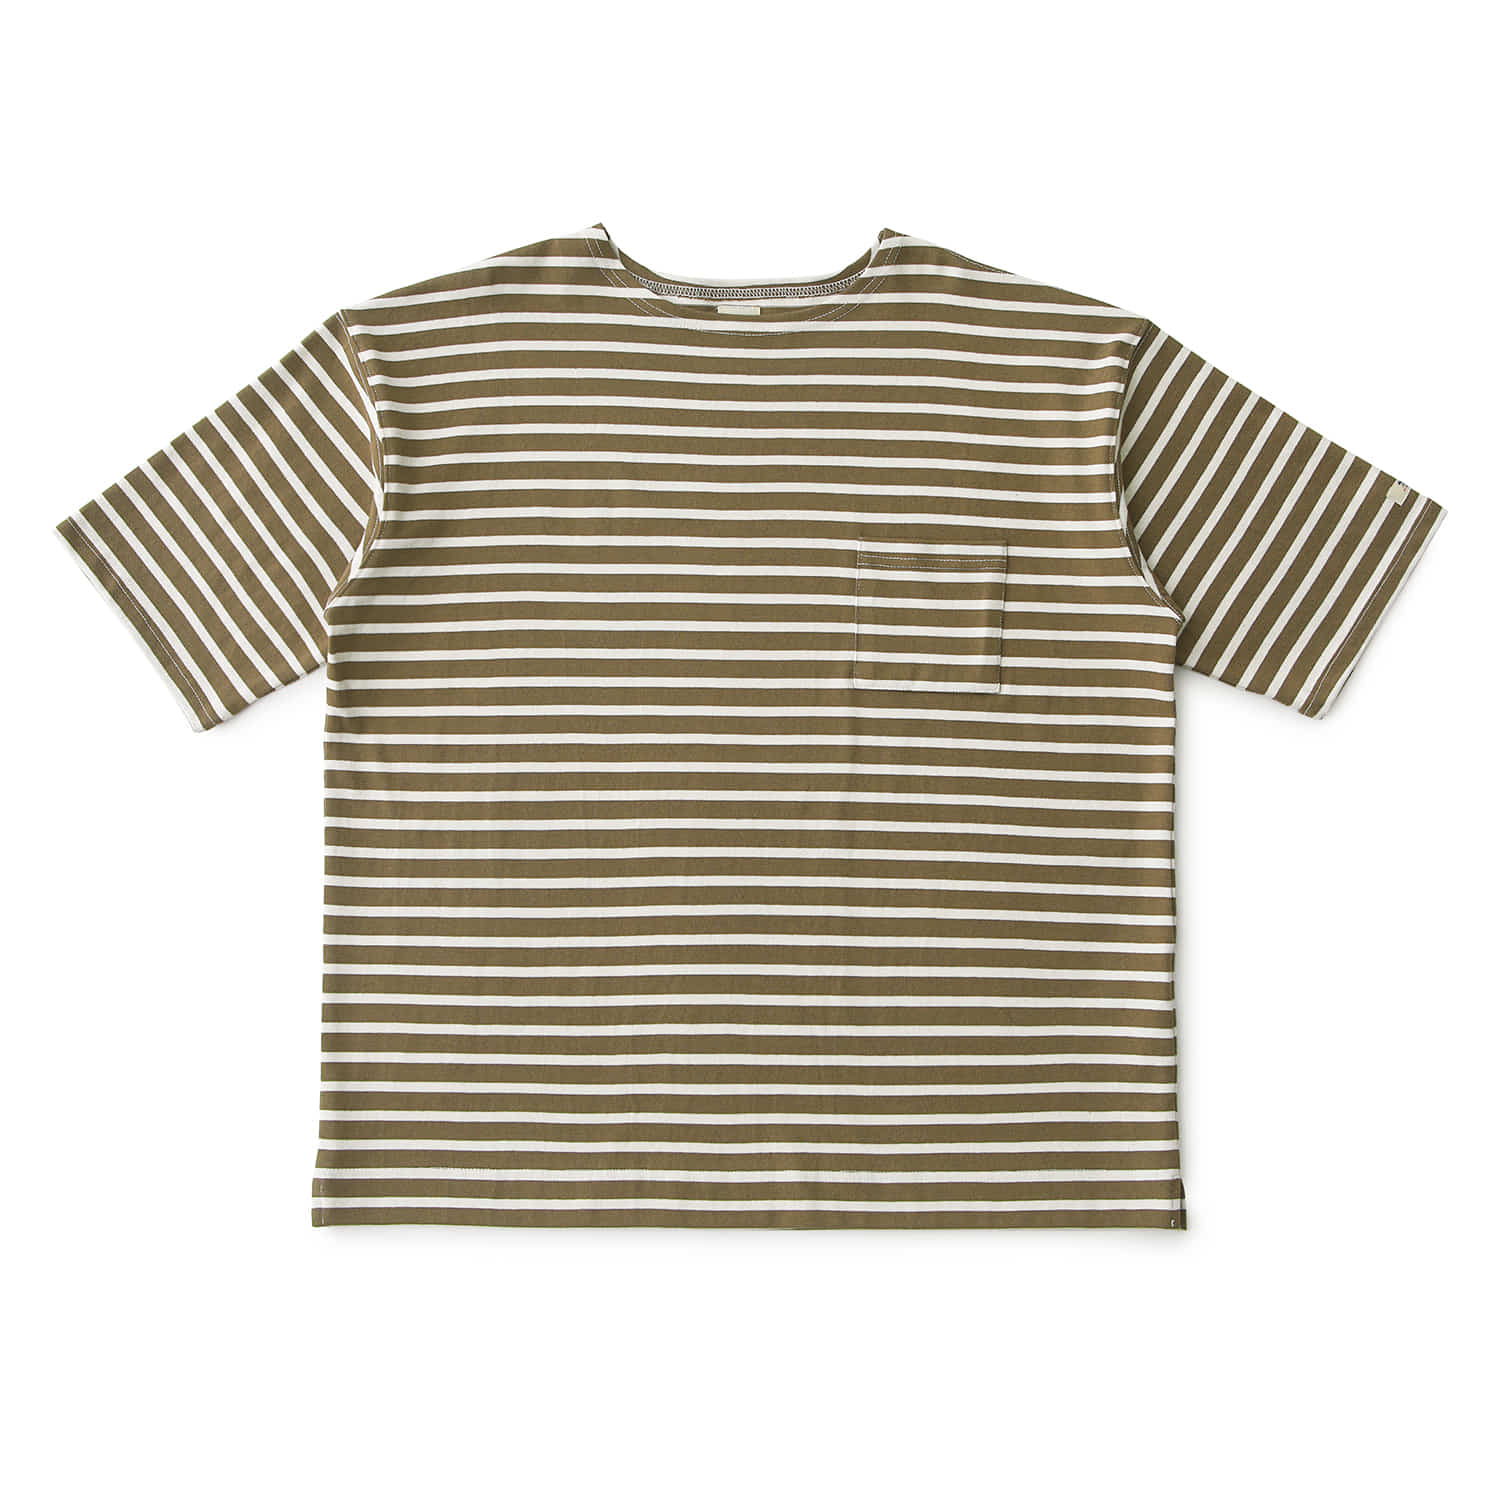 25% OFF_VISTA OVERSIZED BASQUESHIRT (Khaki/Ecru)